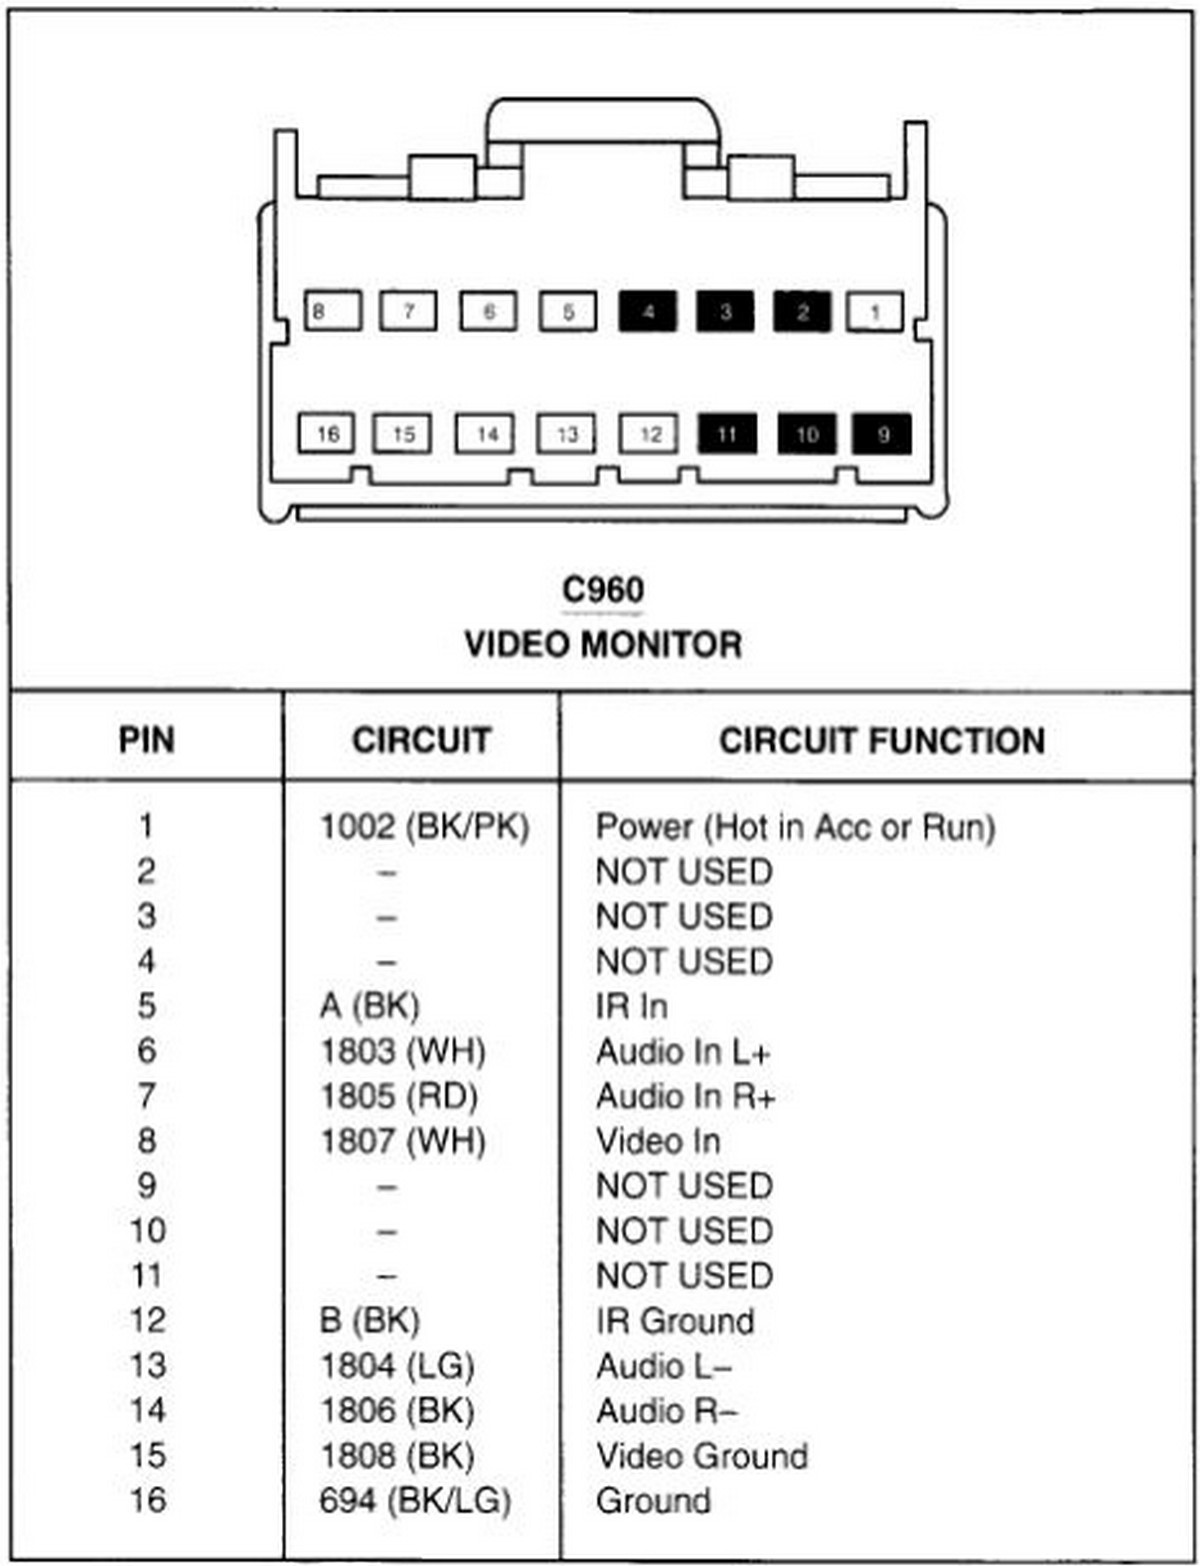 Ford car radio stereo audio wiring diagram autoradio connector wire ford car radio stereo audio wiring diagram autoradio connector wire installation schematic schema esquema de conexiones stecker konektor connecteur cable publicscrutiny Gallery